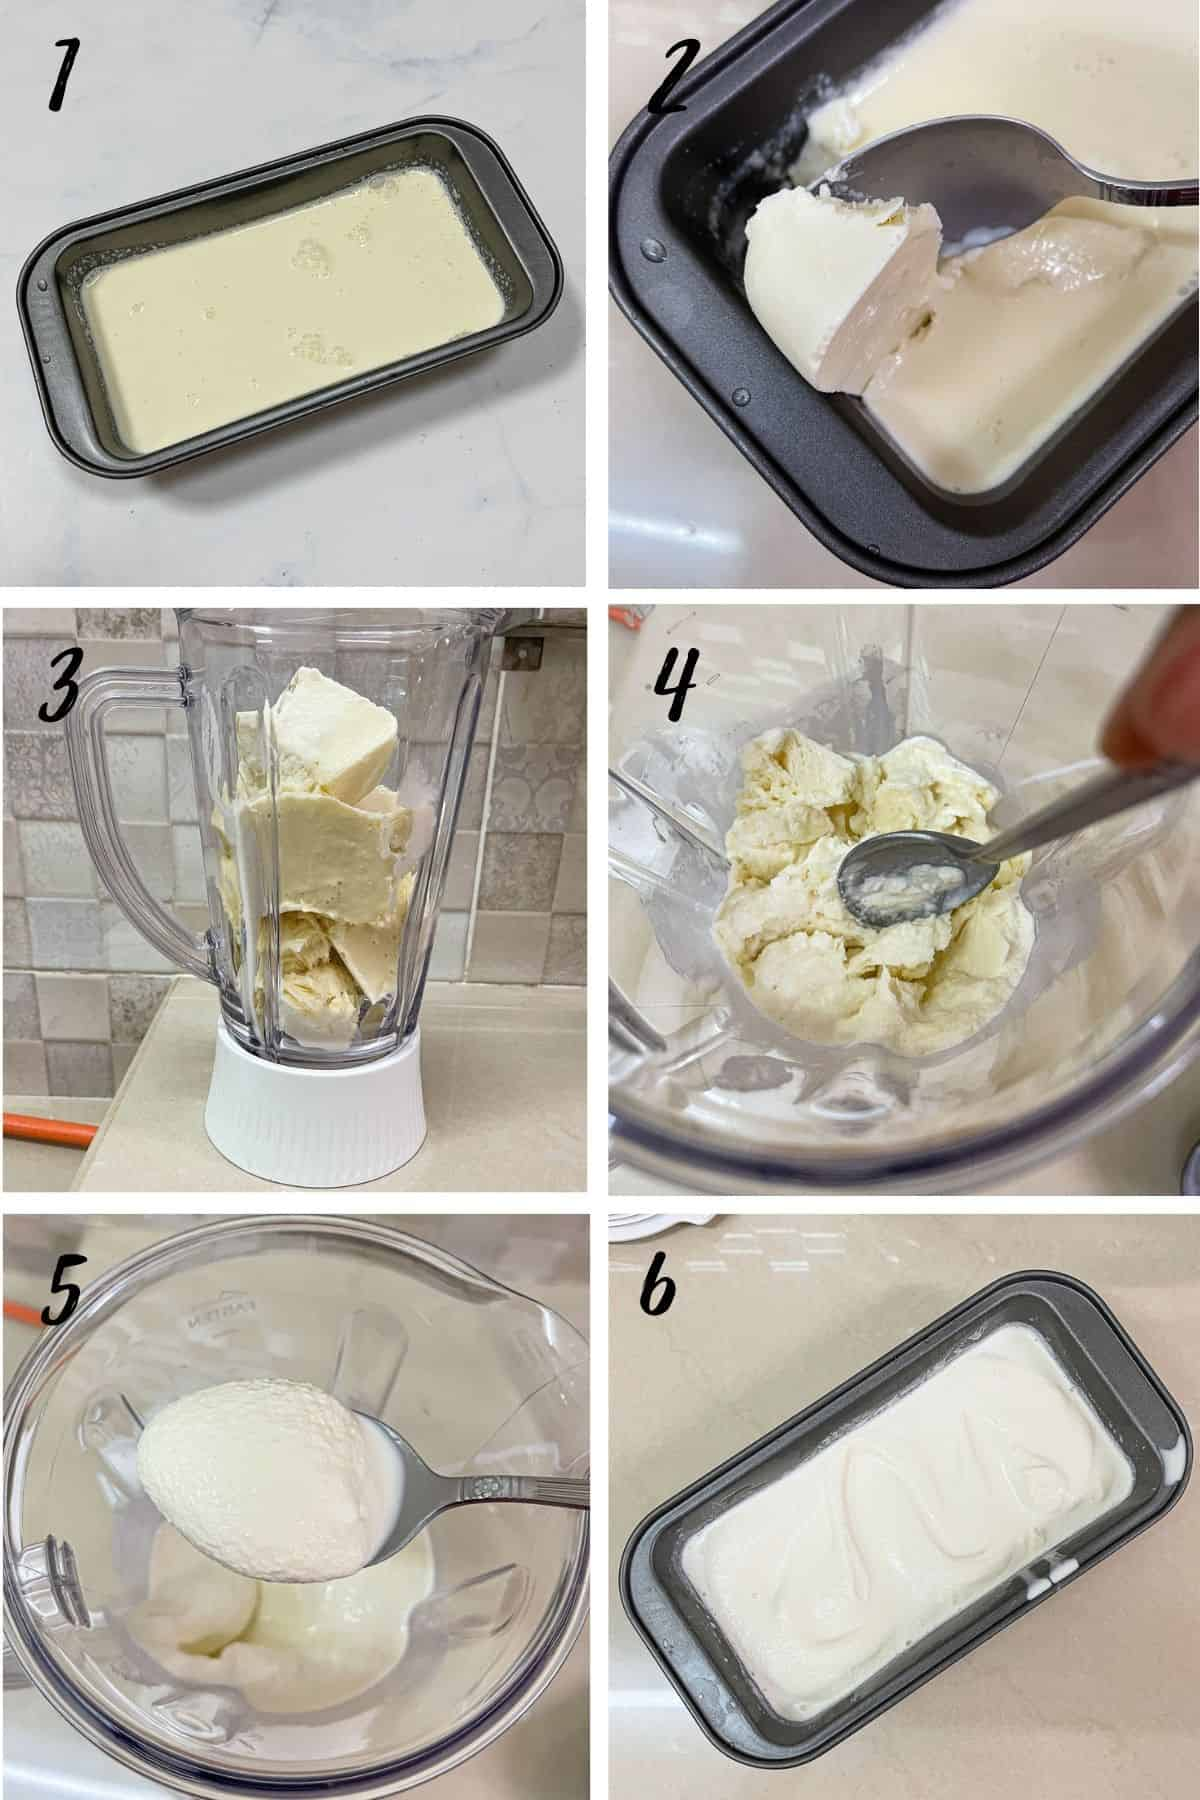 A poster of 6 images showing how to make churned ice cream with a blender